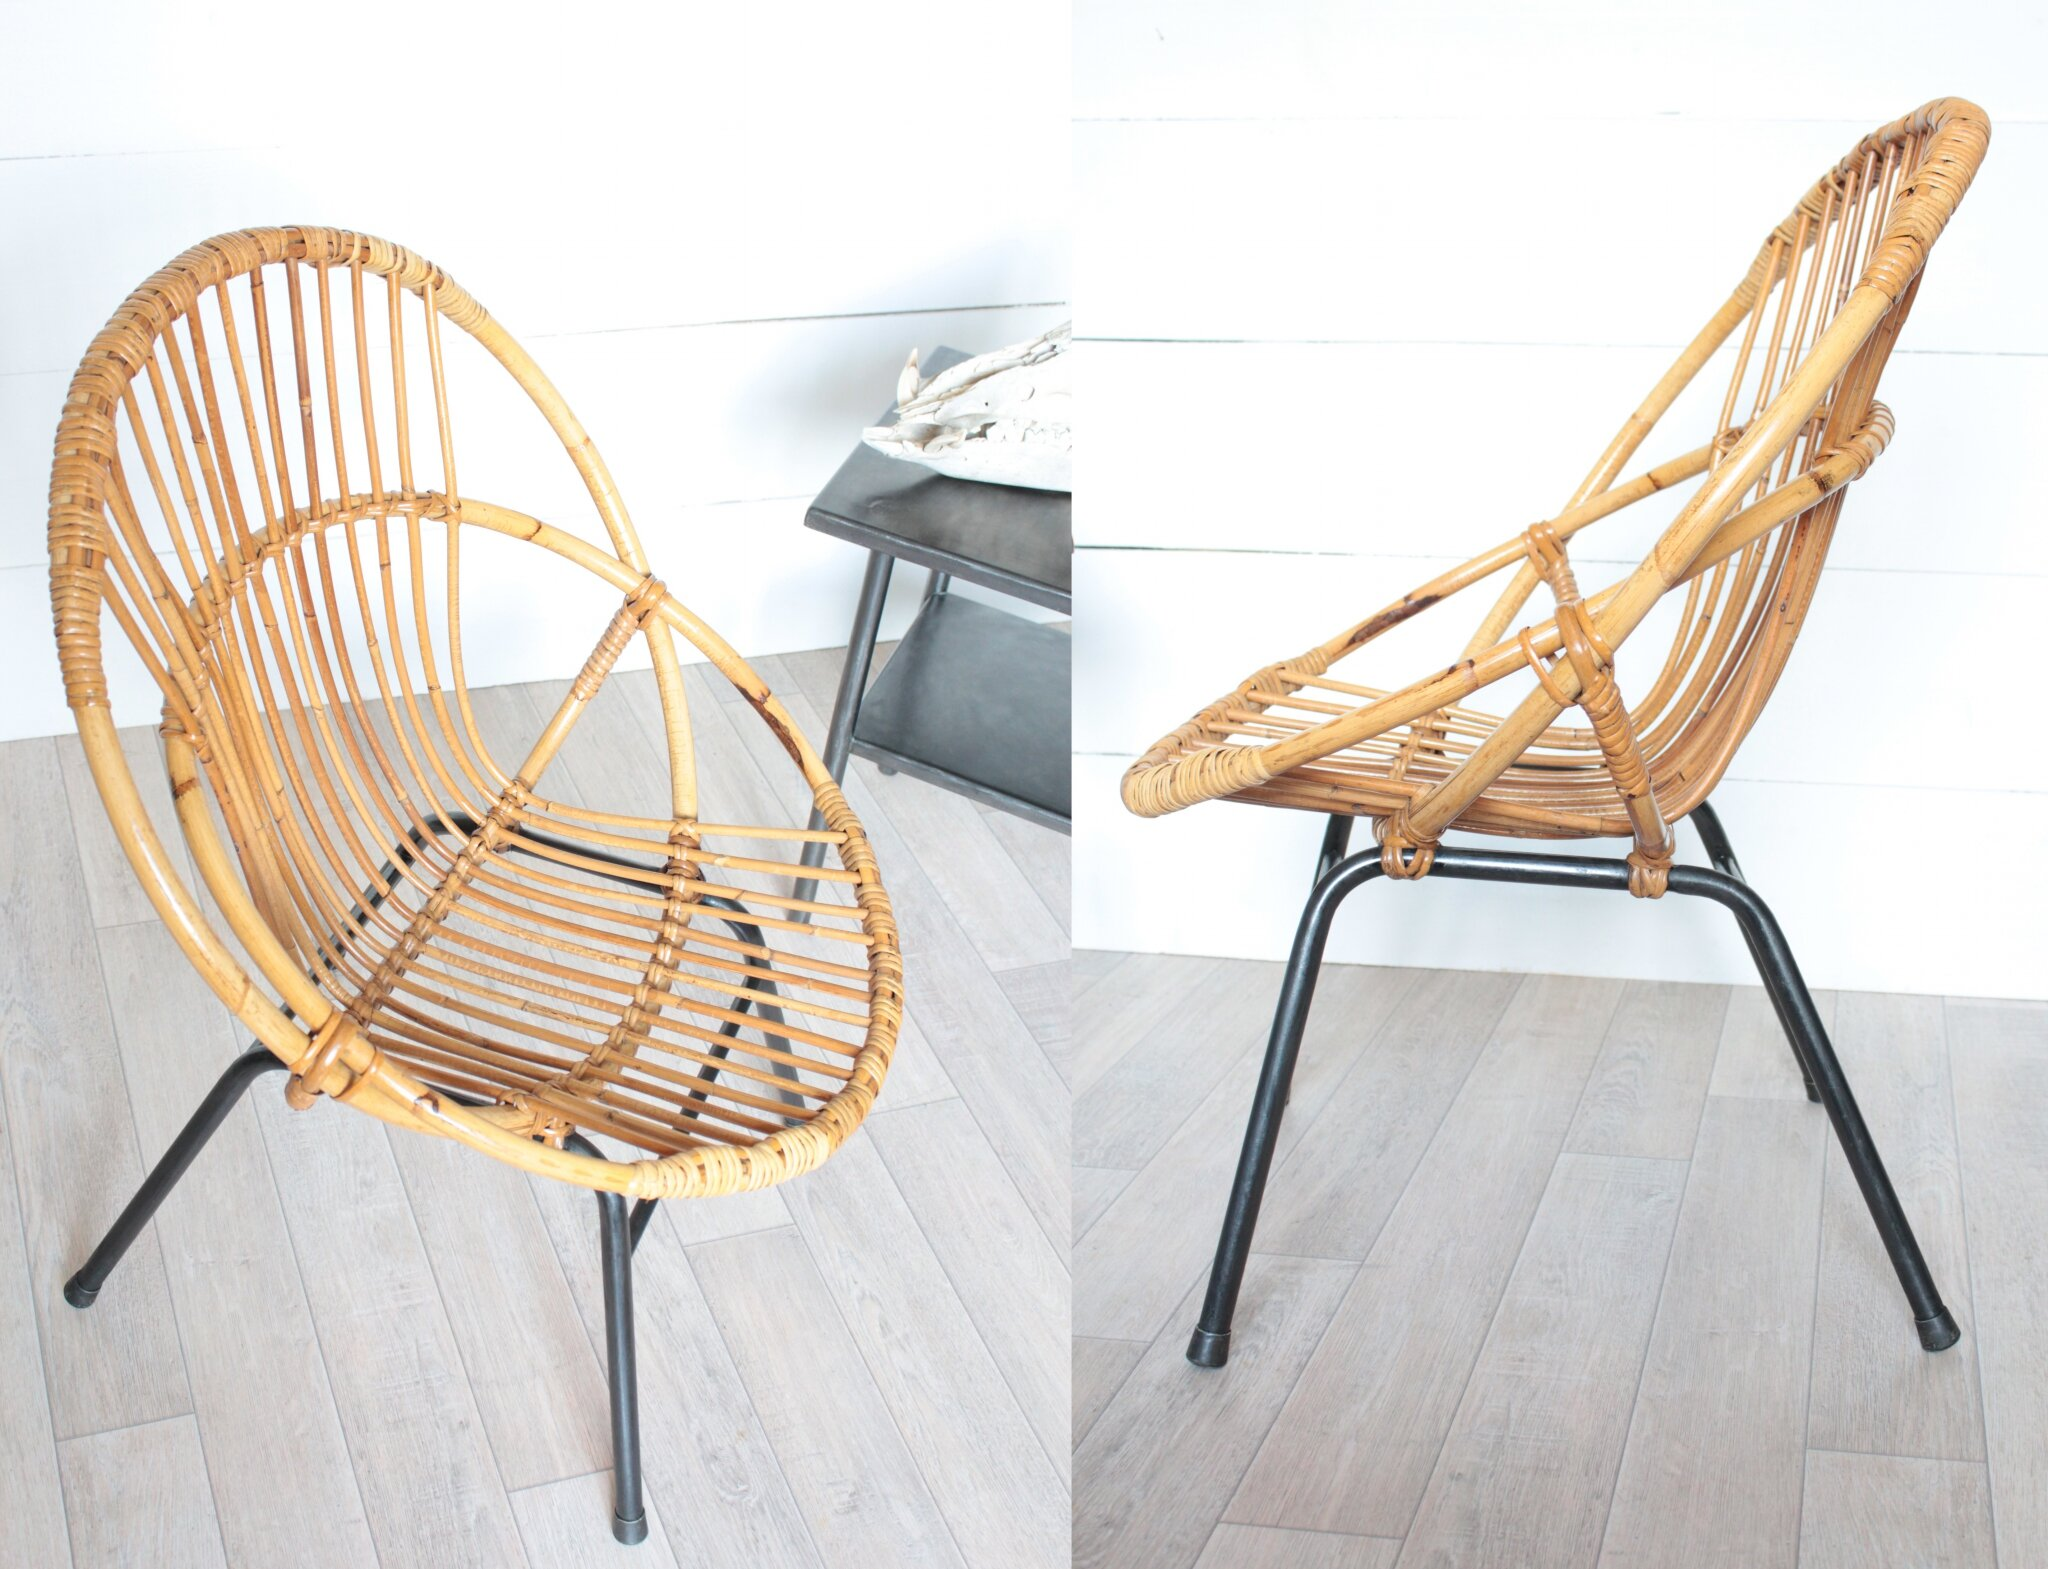 Fauteuil Rond Osier Fashion Designs - Fauteuil rotin rond